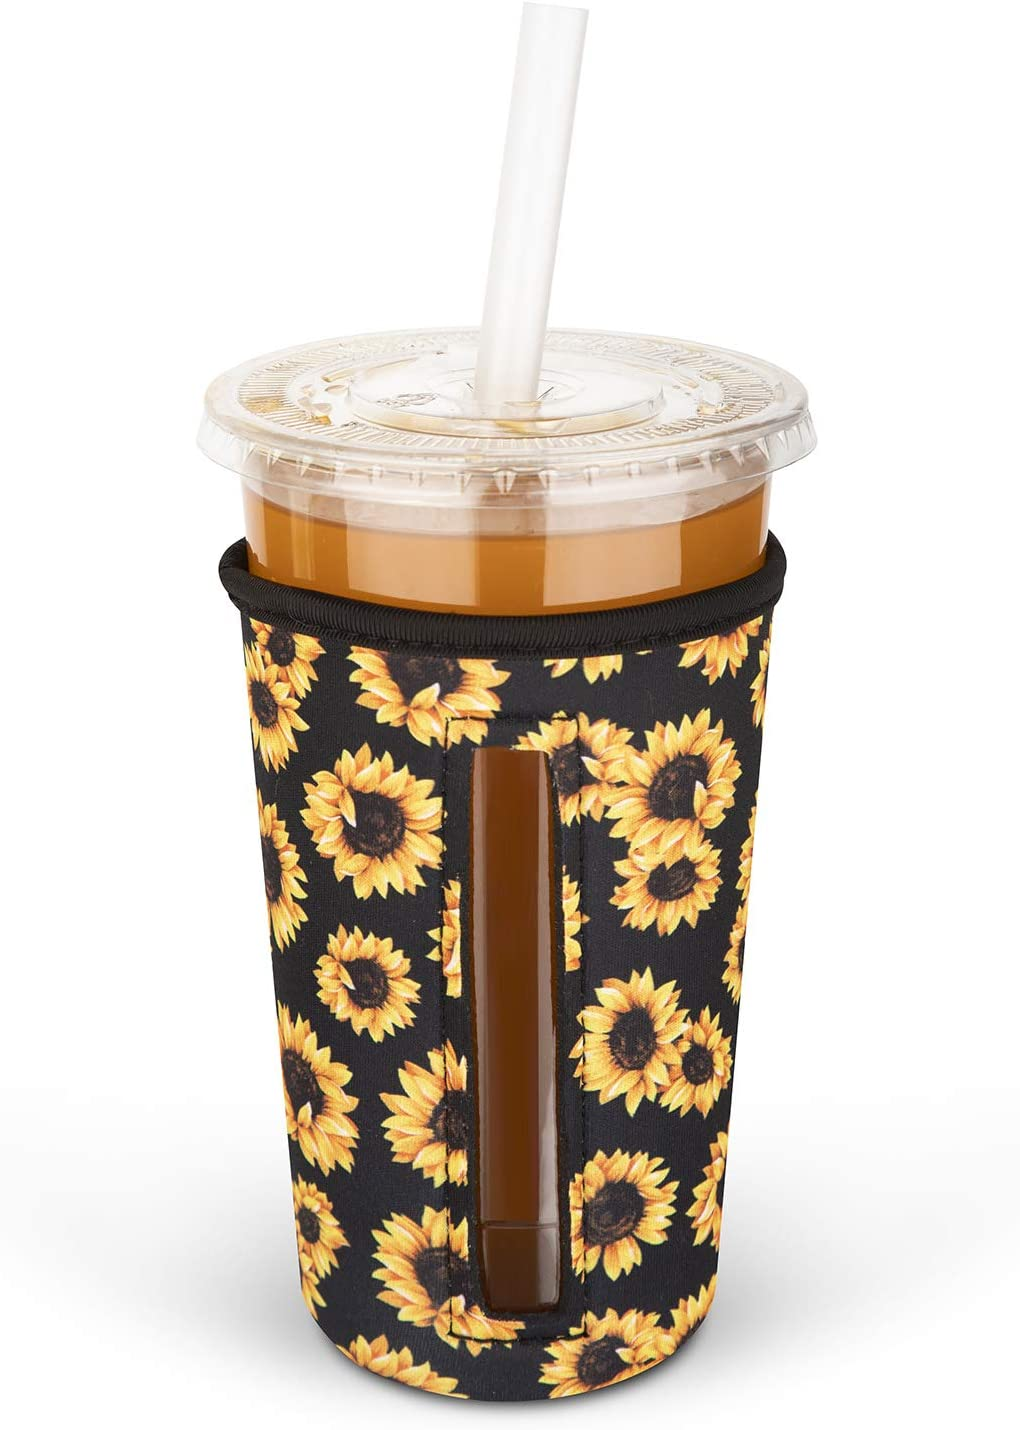 MEETI Reusable Iced Coffee Cup Insulator Sleeve for Cold Beverages, Neoprene Cup Holder Compatible with Starbucks, McDonald's Coffee, Dunkin Donuts, Tim Hortons and More, Large, Multicolor2